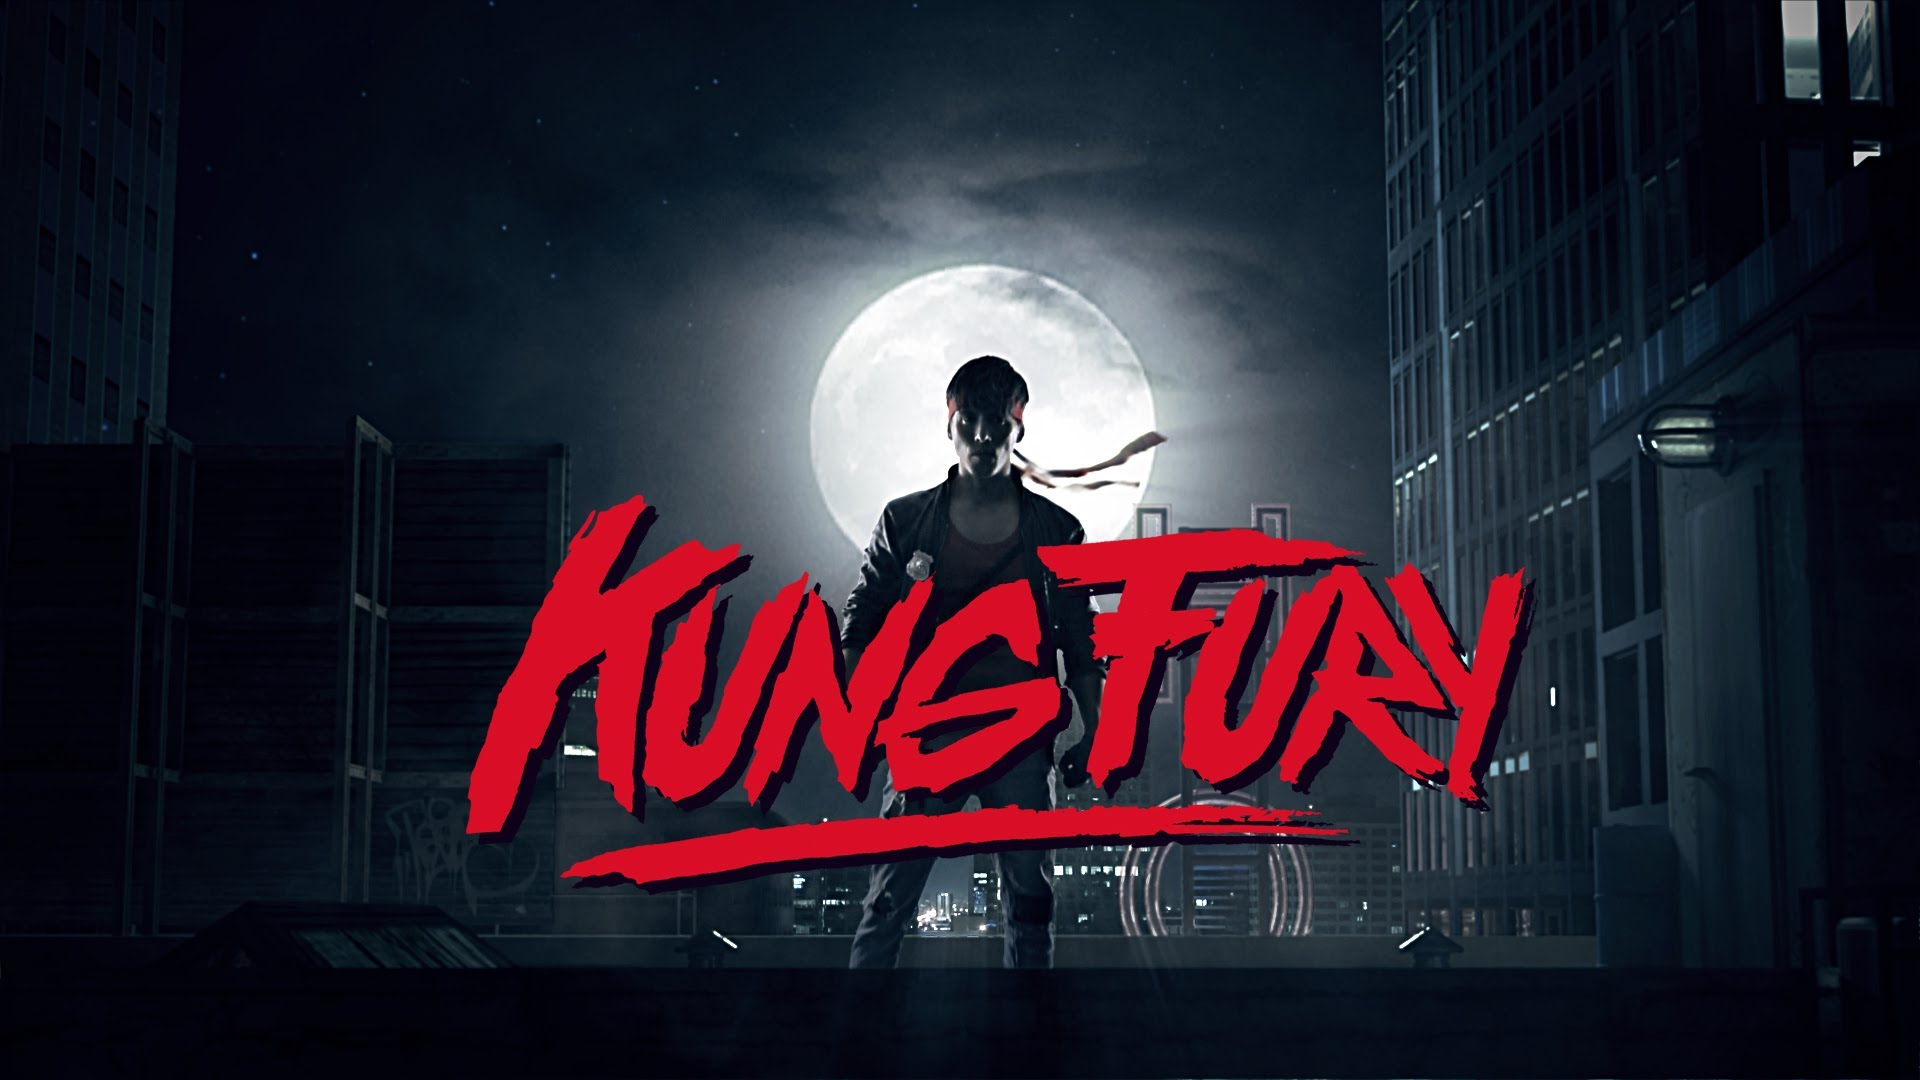 Kung Fury, An 1980s-Style Action Comedy Film About a Kung Fu Cop Who Takes on Hitler